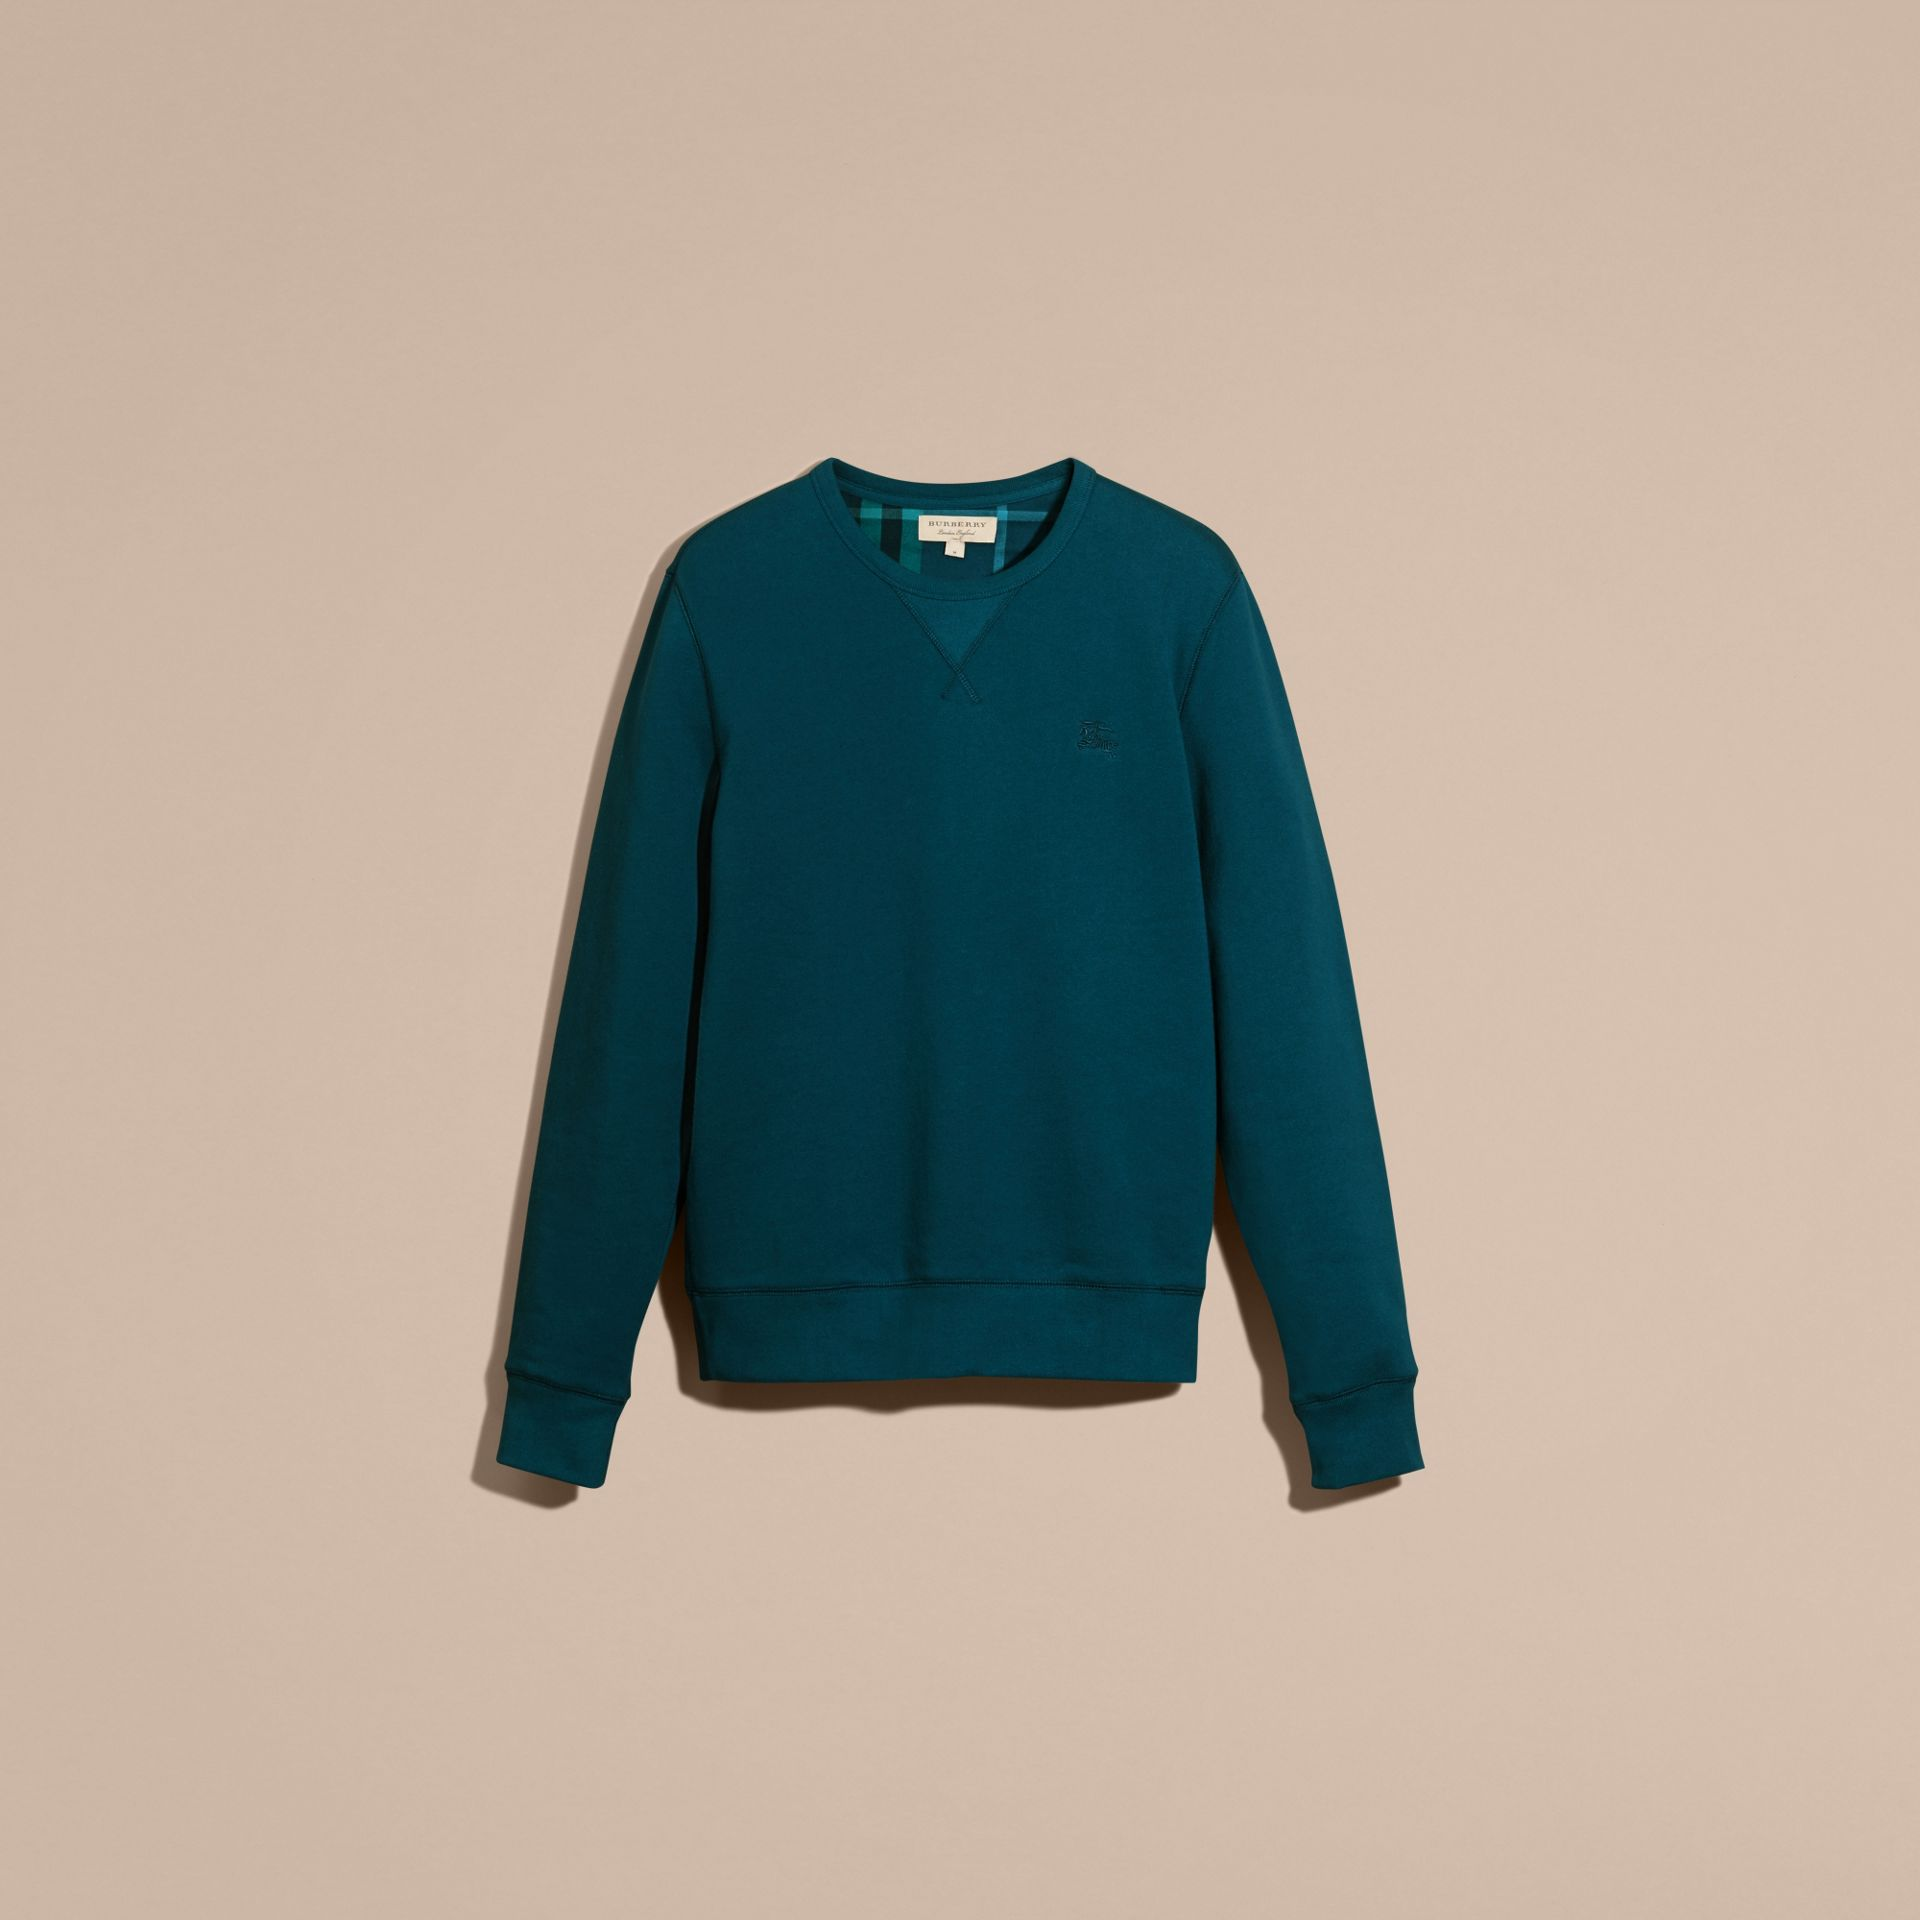 Mineral blue Cotton Blend Jersey Sweatshirt Mineral Blue - gallery image 4